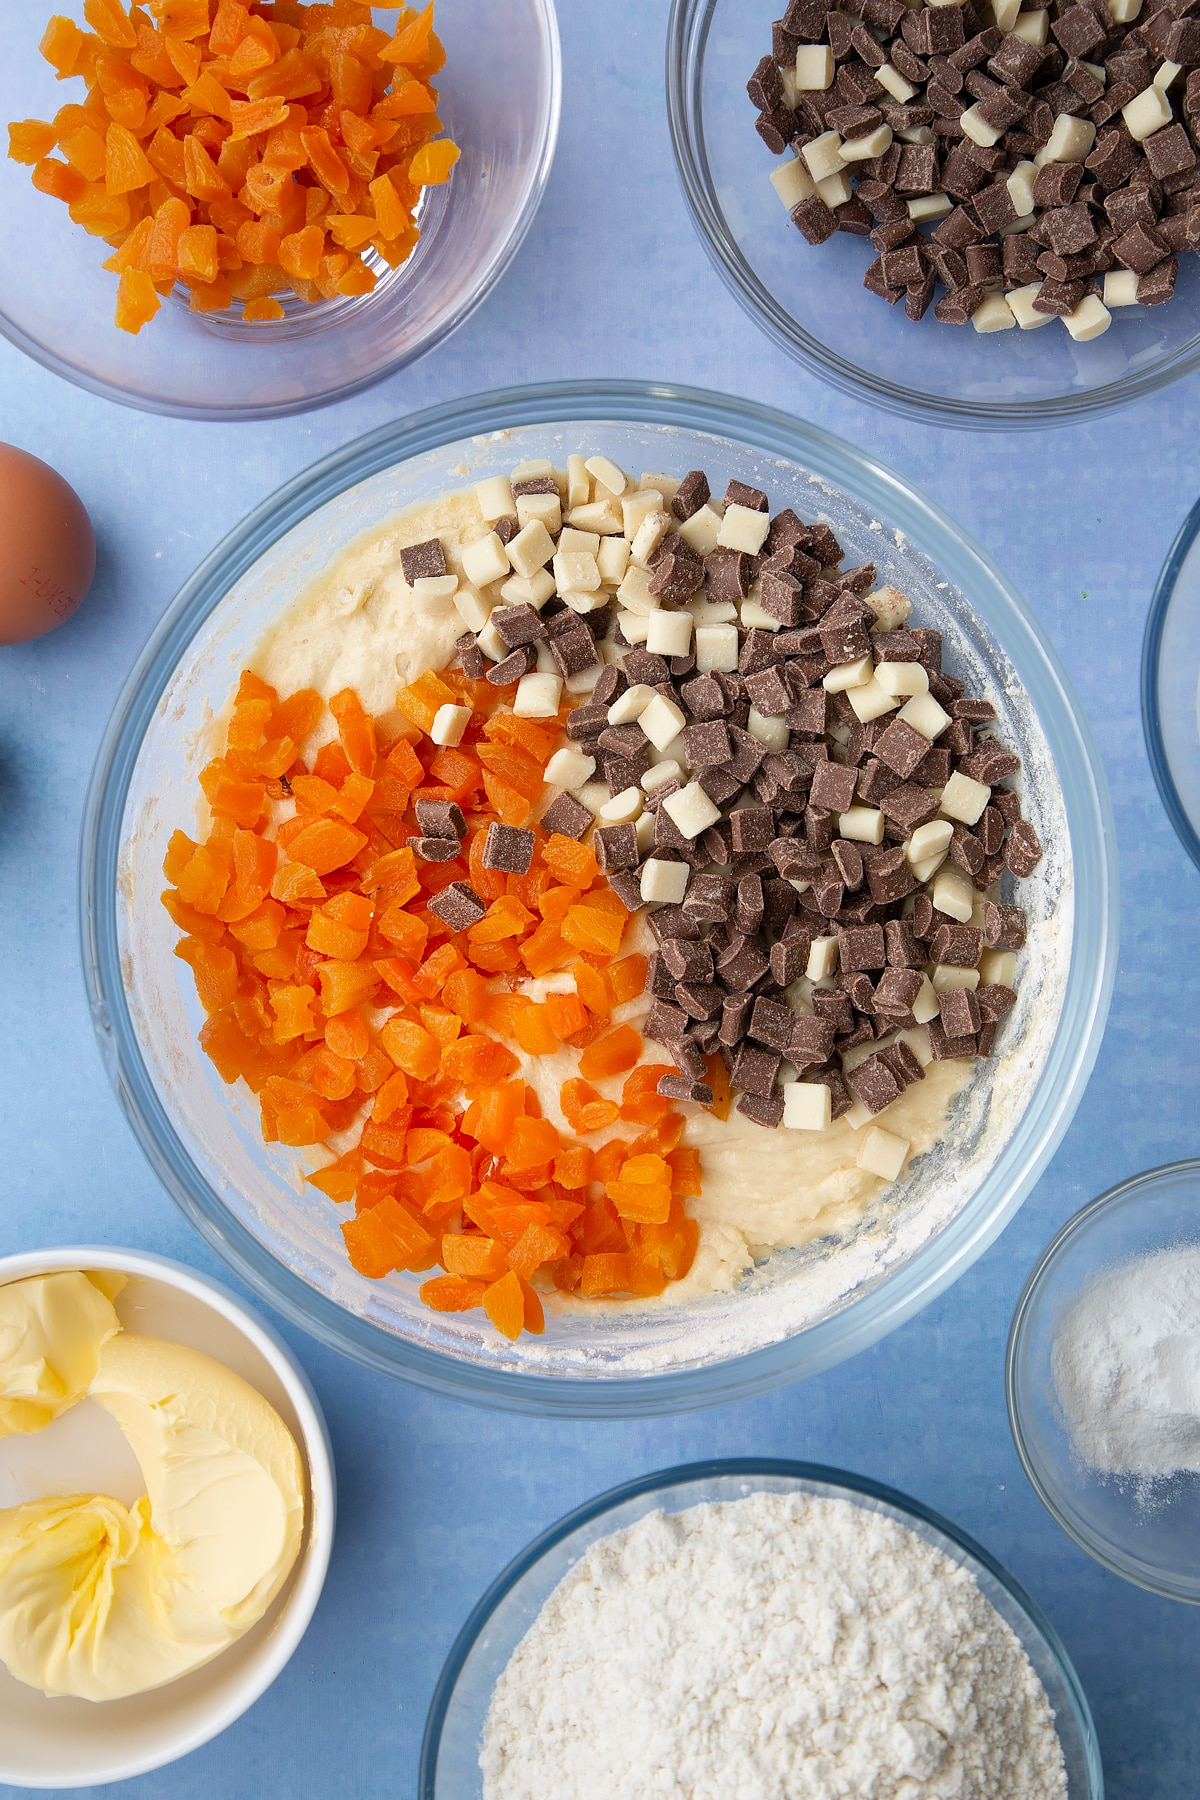 Cookie dough in a glass mixing bowl with chopped dried apricots and chocolate chips on top. Ingredients to make apricot chocolate chip cookies surround the bowl.